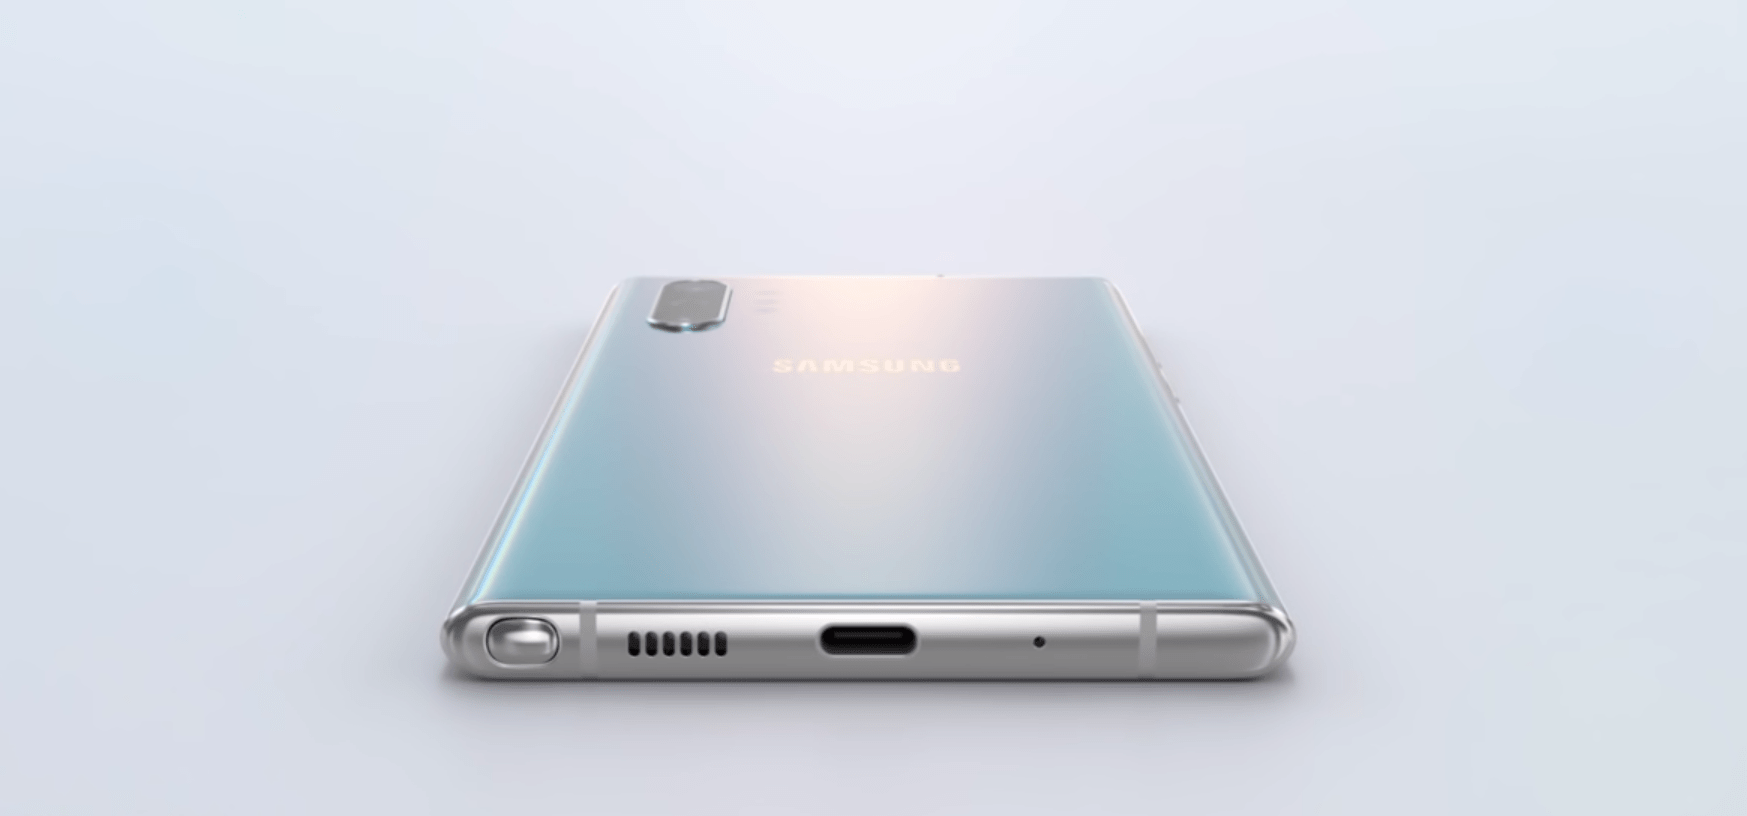 Samsung Galaxy Note 11 release date, specs, rumors and news